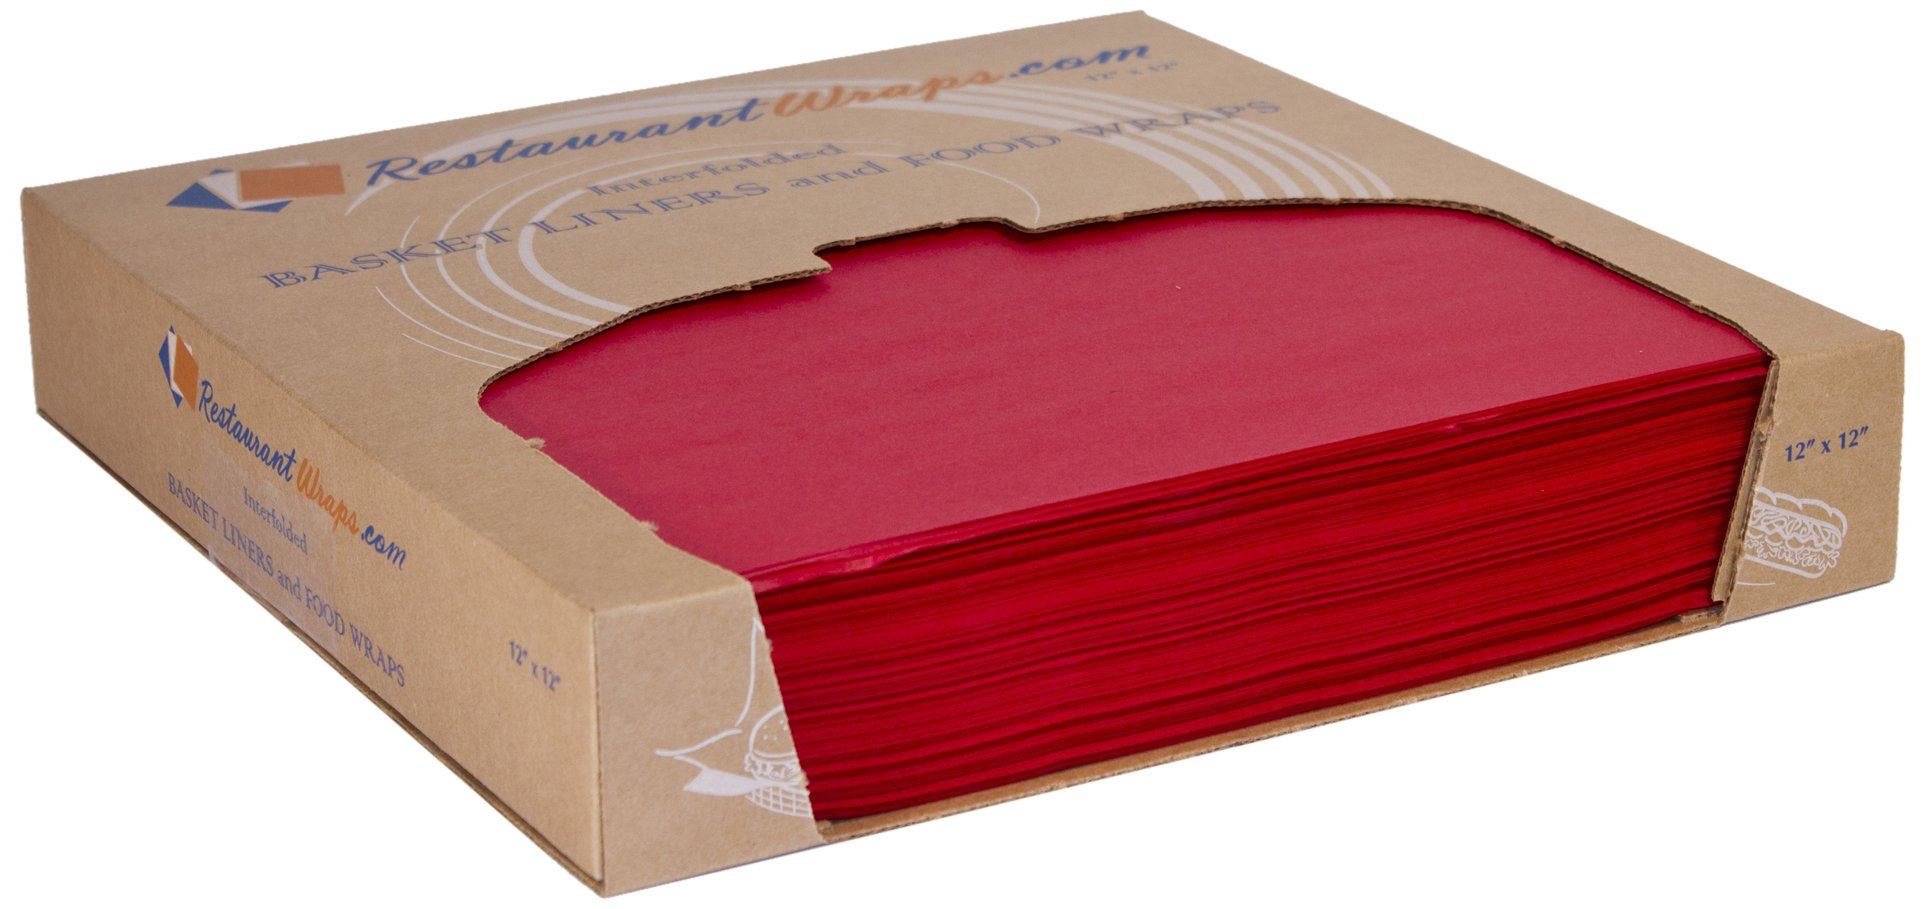 RestaurantWraps.com Waxed Sheets, Basket Liner and Food Wrap, 12'' x 12'', Cherry (6 Packs of 1000 Sheets)